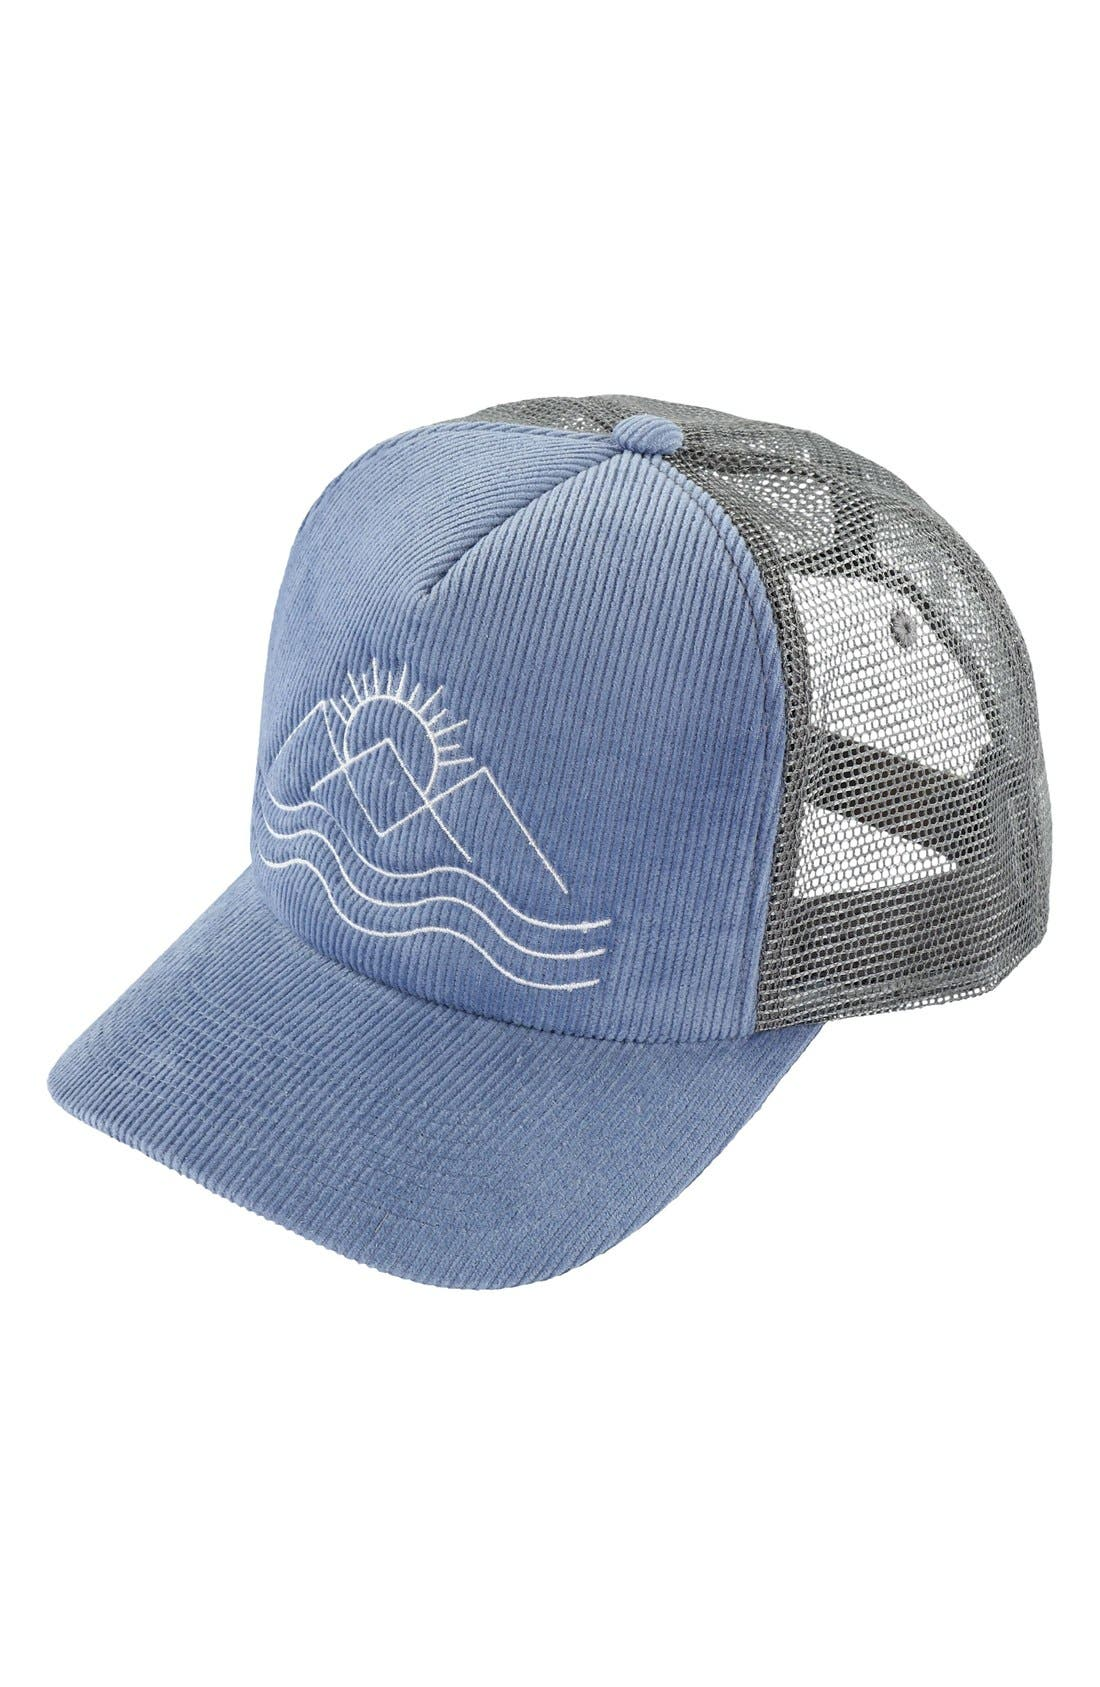 Alternate Image 1 Selected - O'Neill Outlook Corduroy Trucker Hat